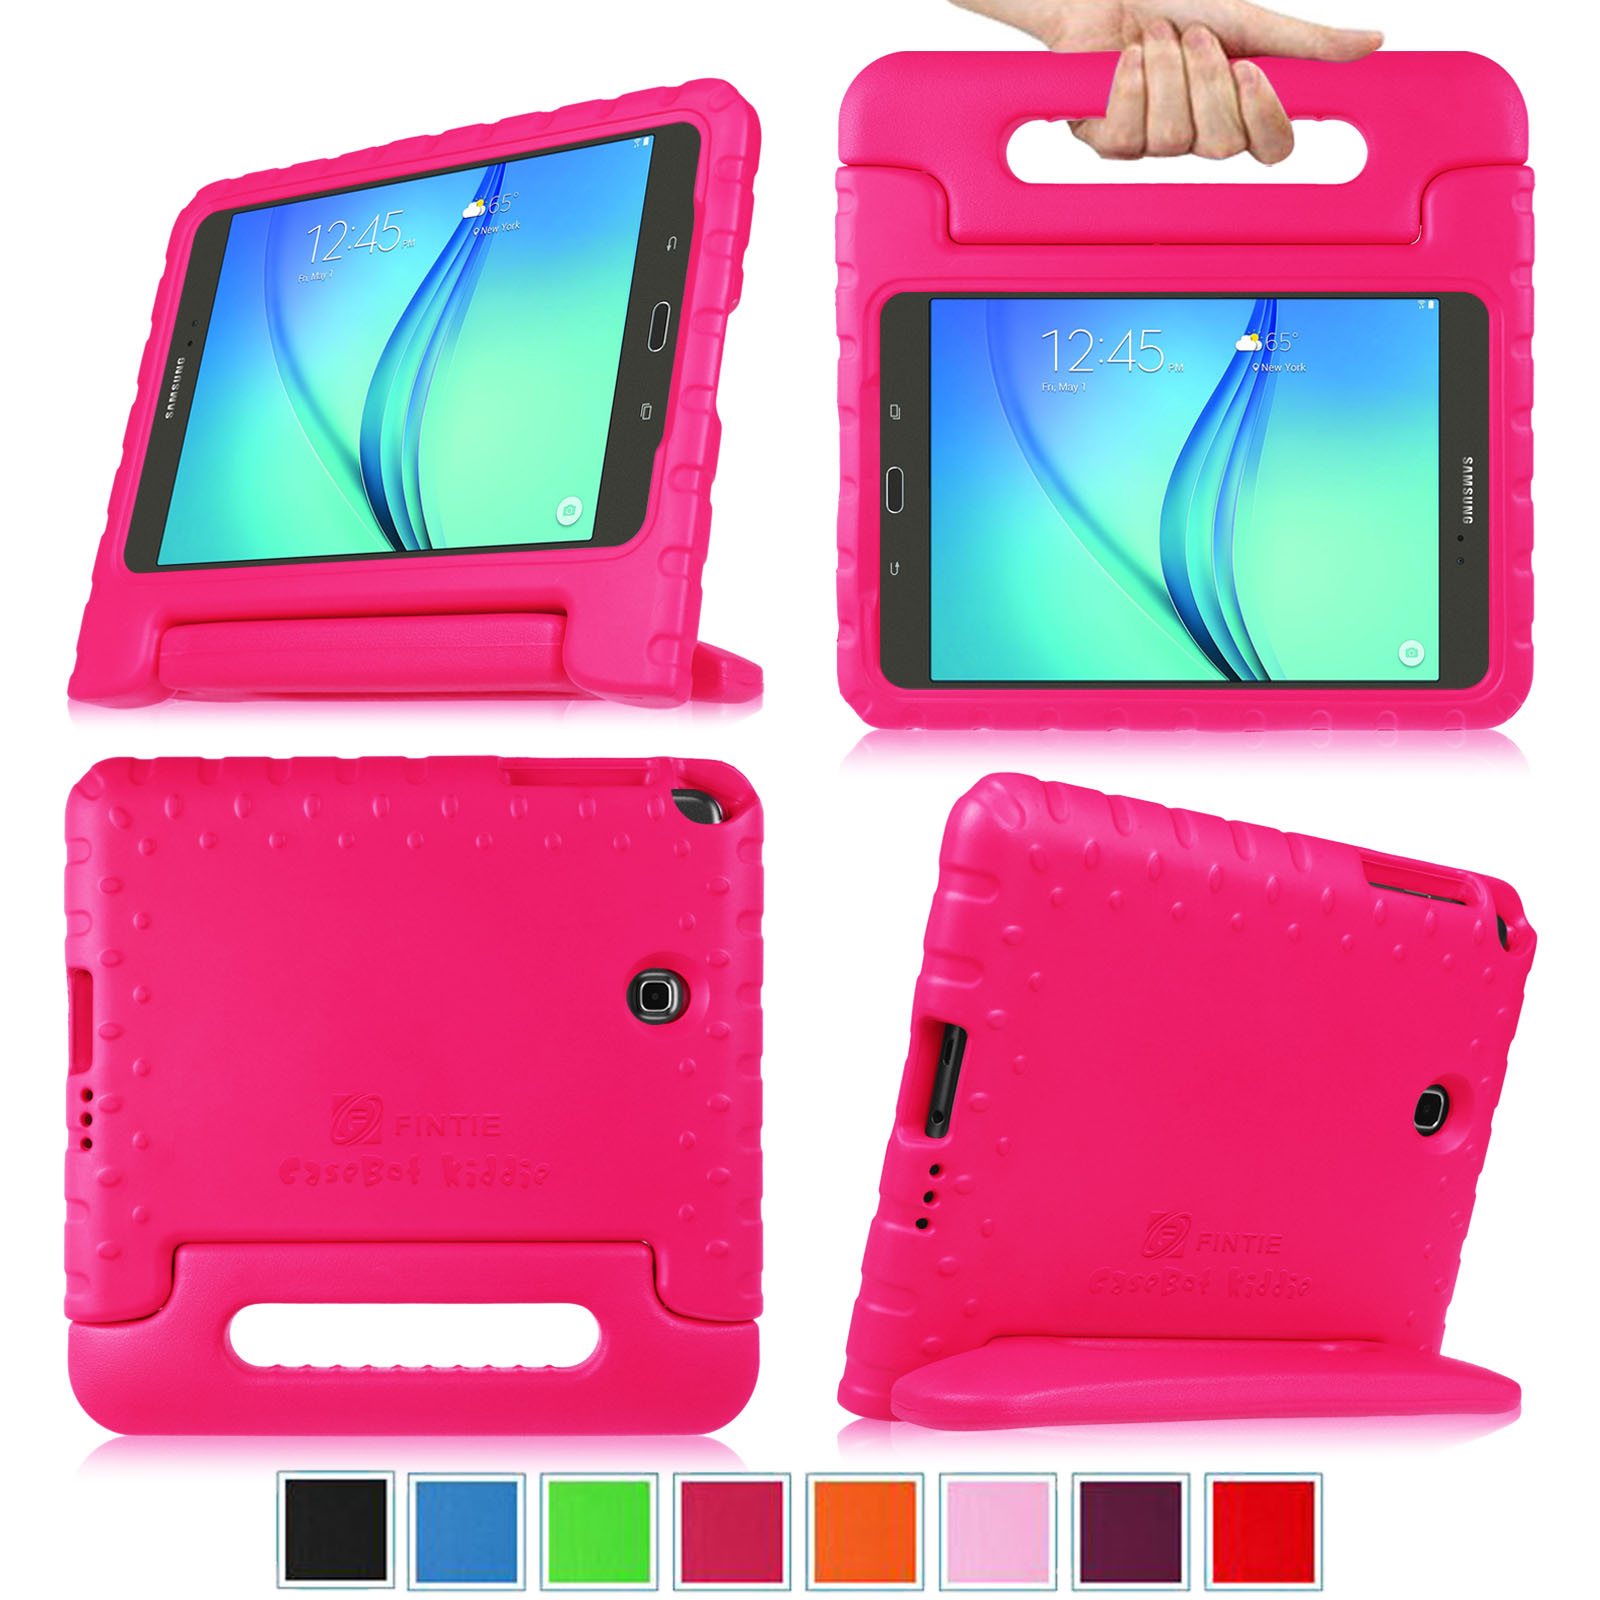 Samsung Galaxy Tab A 8.0 SM-T350 Tablet Kiddie Case - Fintie Lightweight Shock Proof Handle Stand Cover, Magenta